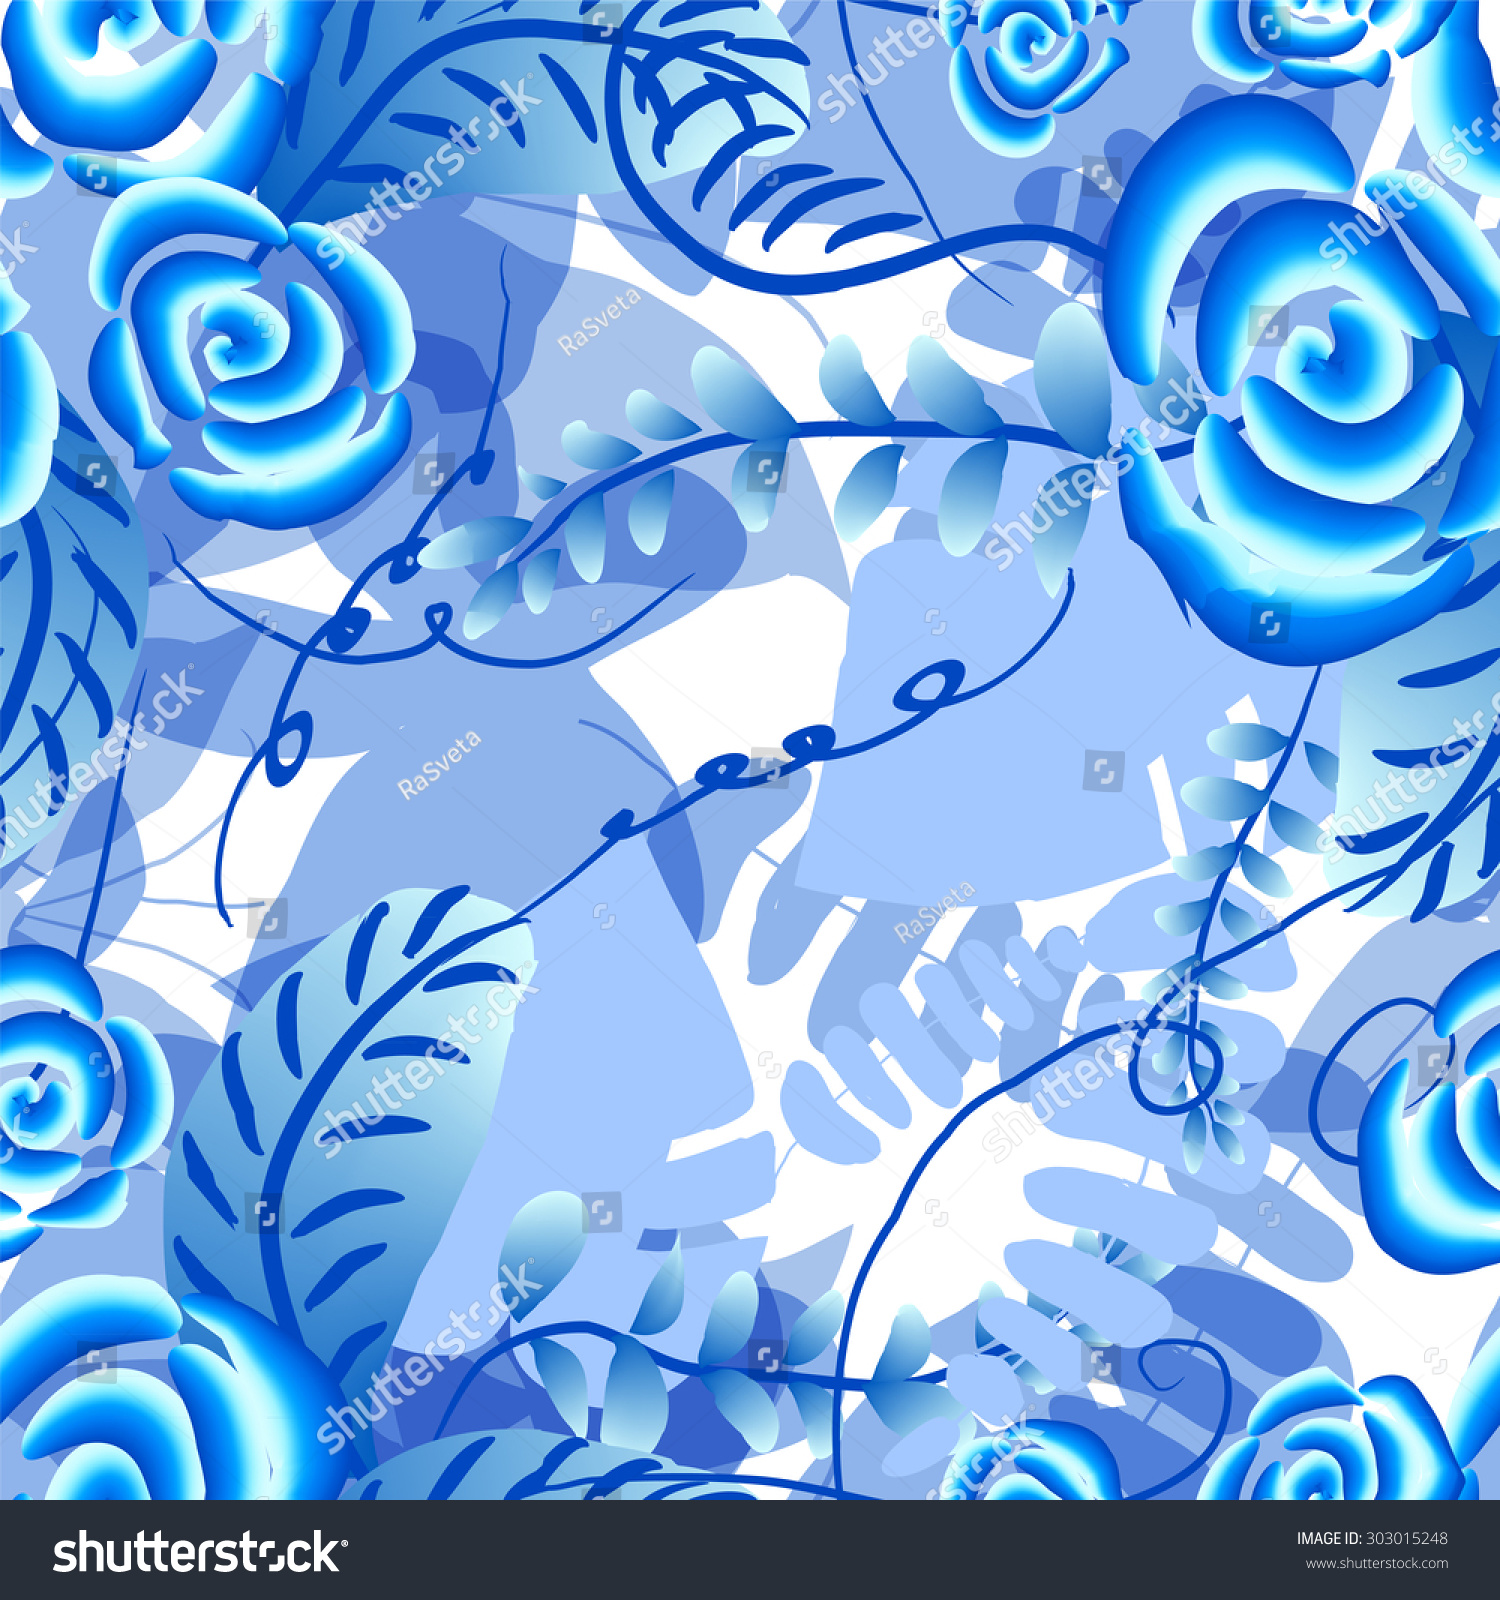 Artistic floral element abstract gzhel folk art blue flowers stock - Abstract Floral Seamless Background Pattern With Folk Art Flowers Blue White Gzhel Ornament Preview Save To A Lightbox